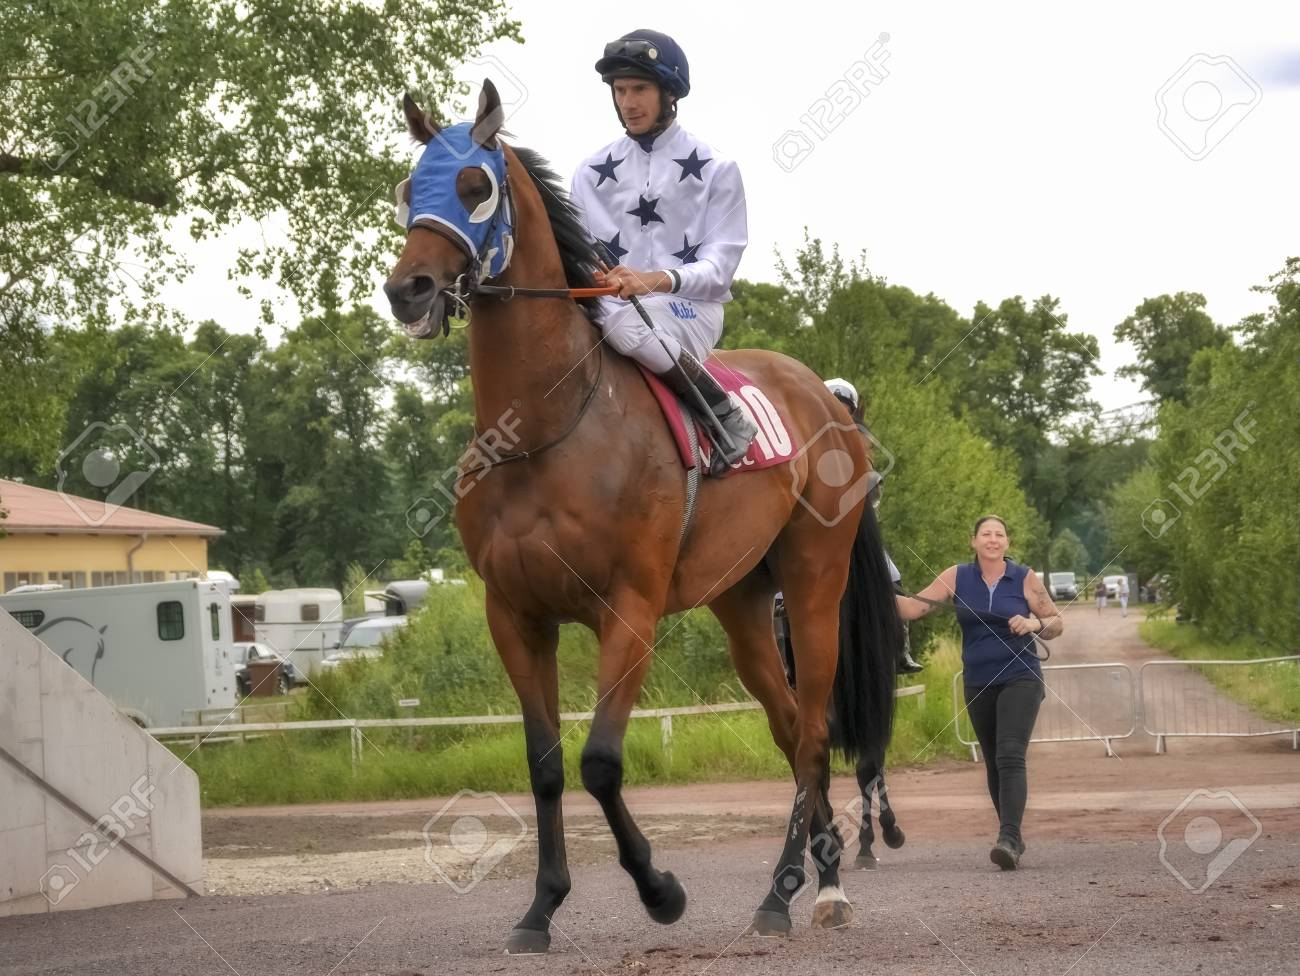 Magdeburg Germany 24 Juni 2017 Jockey Rides On The Red Horse Stock Photo Picture And Royalty Free Image Image 115968307